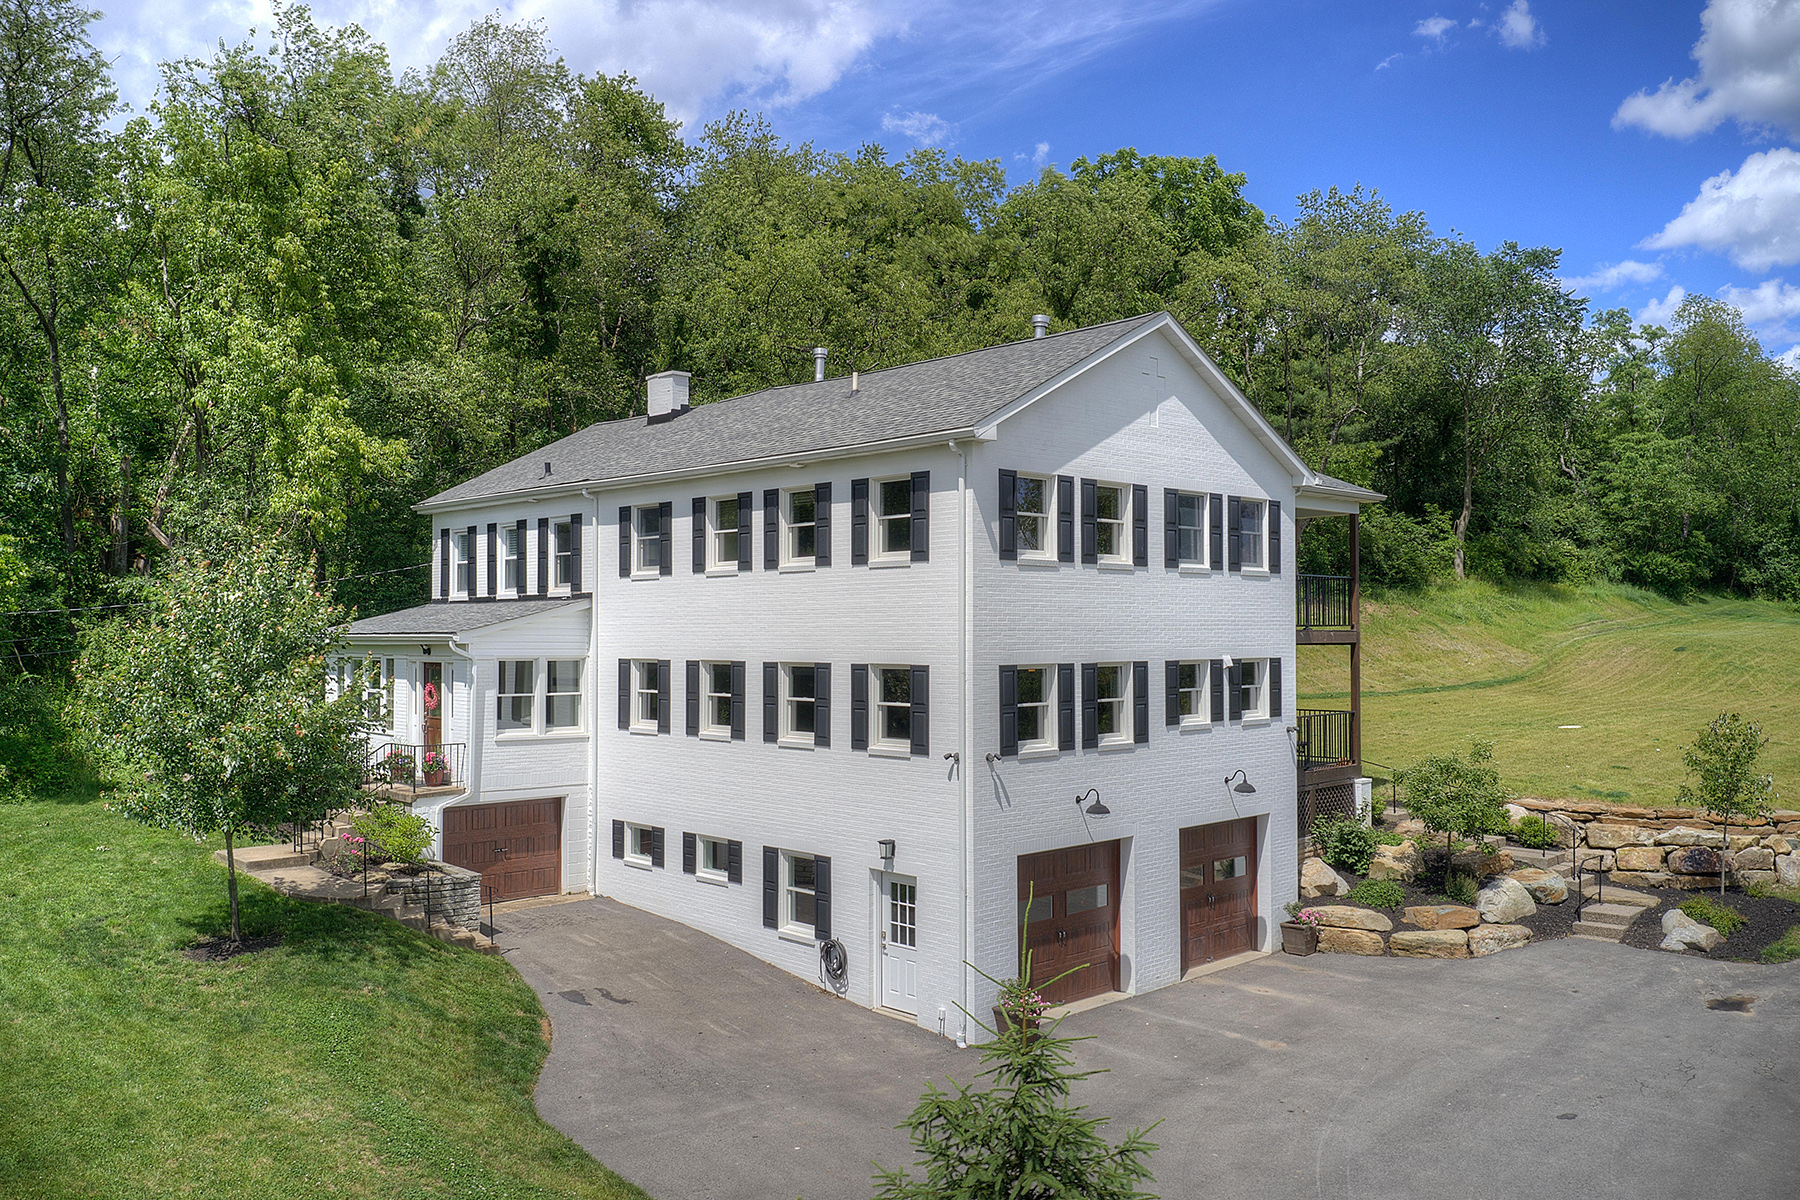 Single Family Homes for Sale at Chic Farmhouse on Private Acre- 2034 Henry Road Sewickley, Pennsylvania 15143 United States